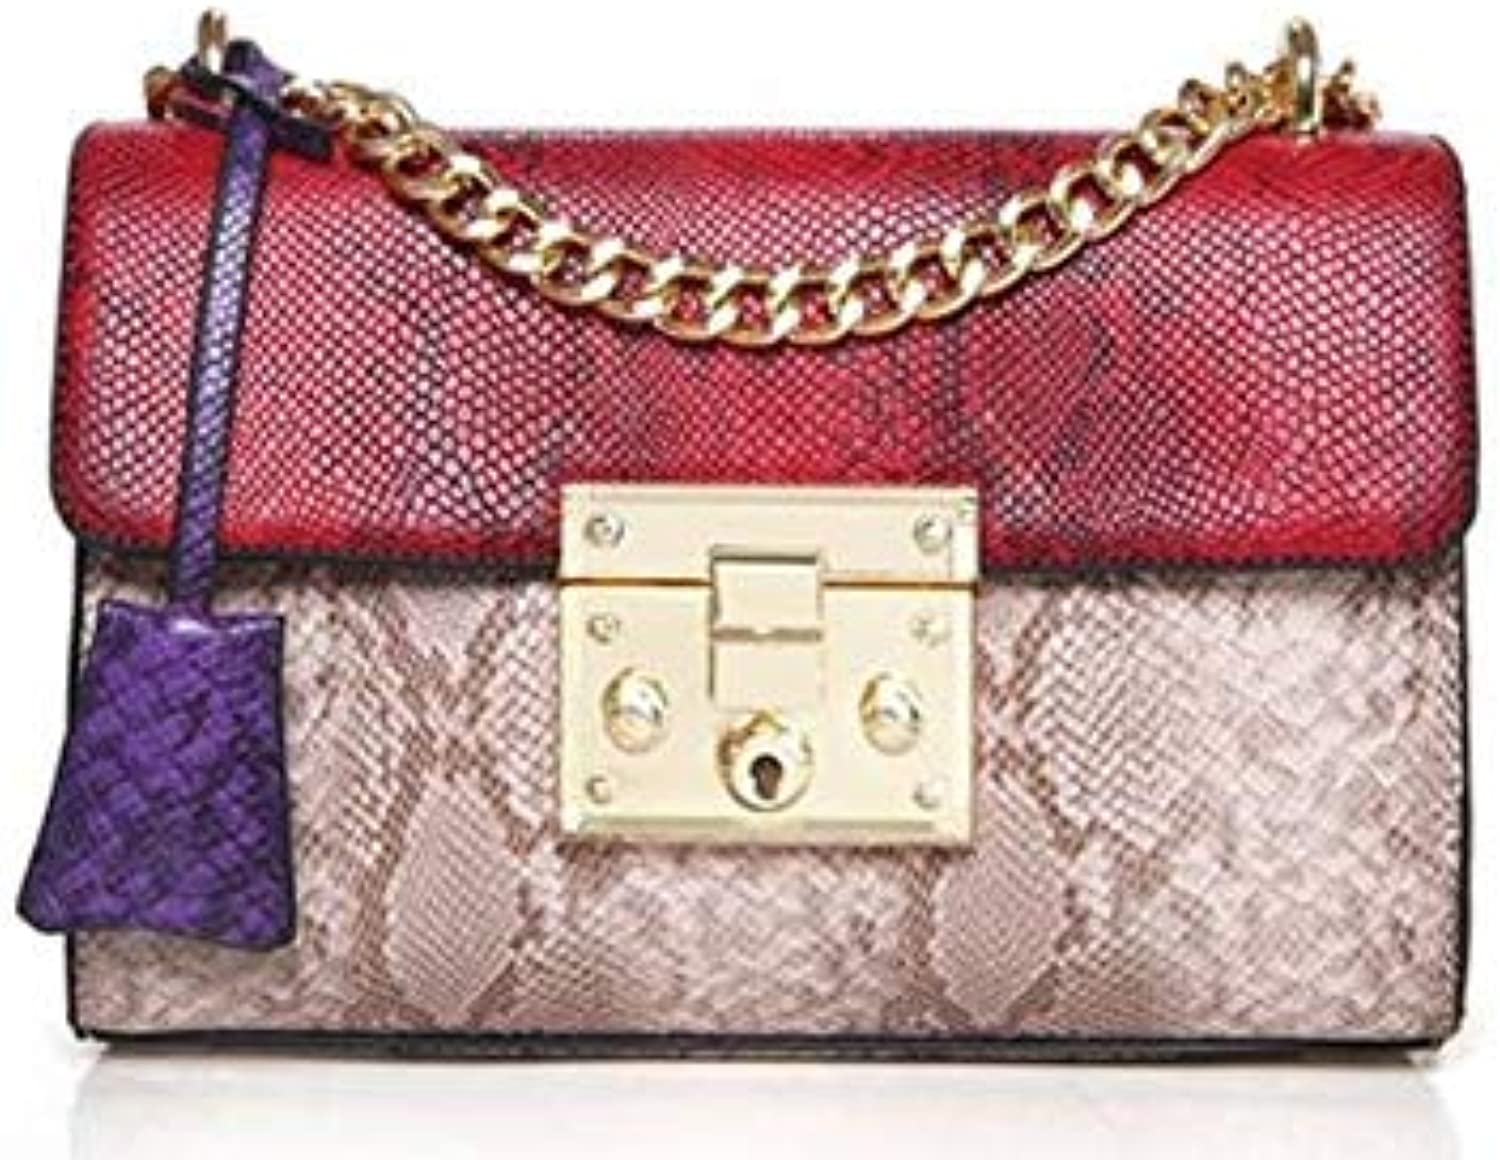 Bloomerang 2017 Kavard Mini Flap Famous Brands Luxury Handbags Women Bag Women's Handbag Hand Bag Ladies PU Leather Serpentin Crossbody Bag color Red